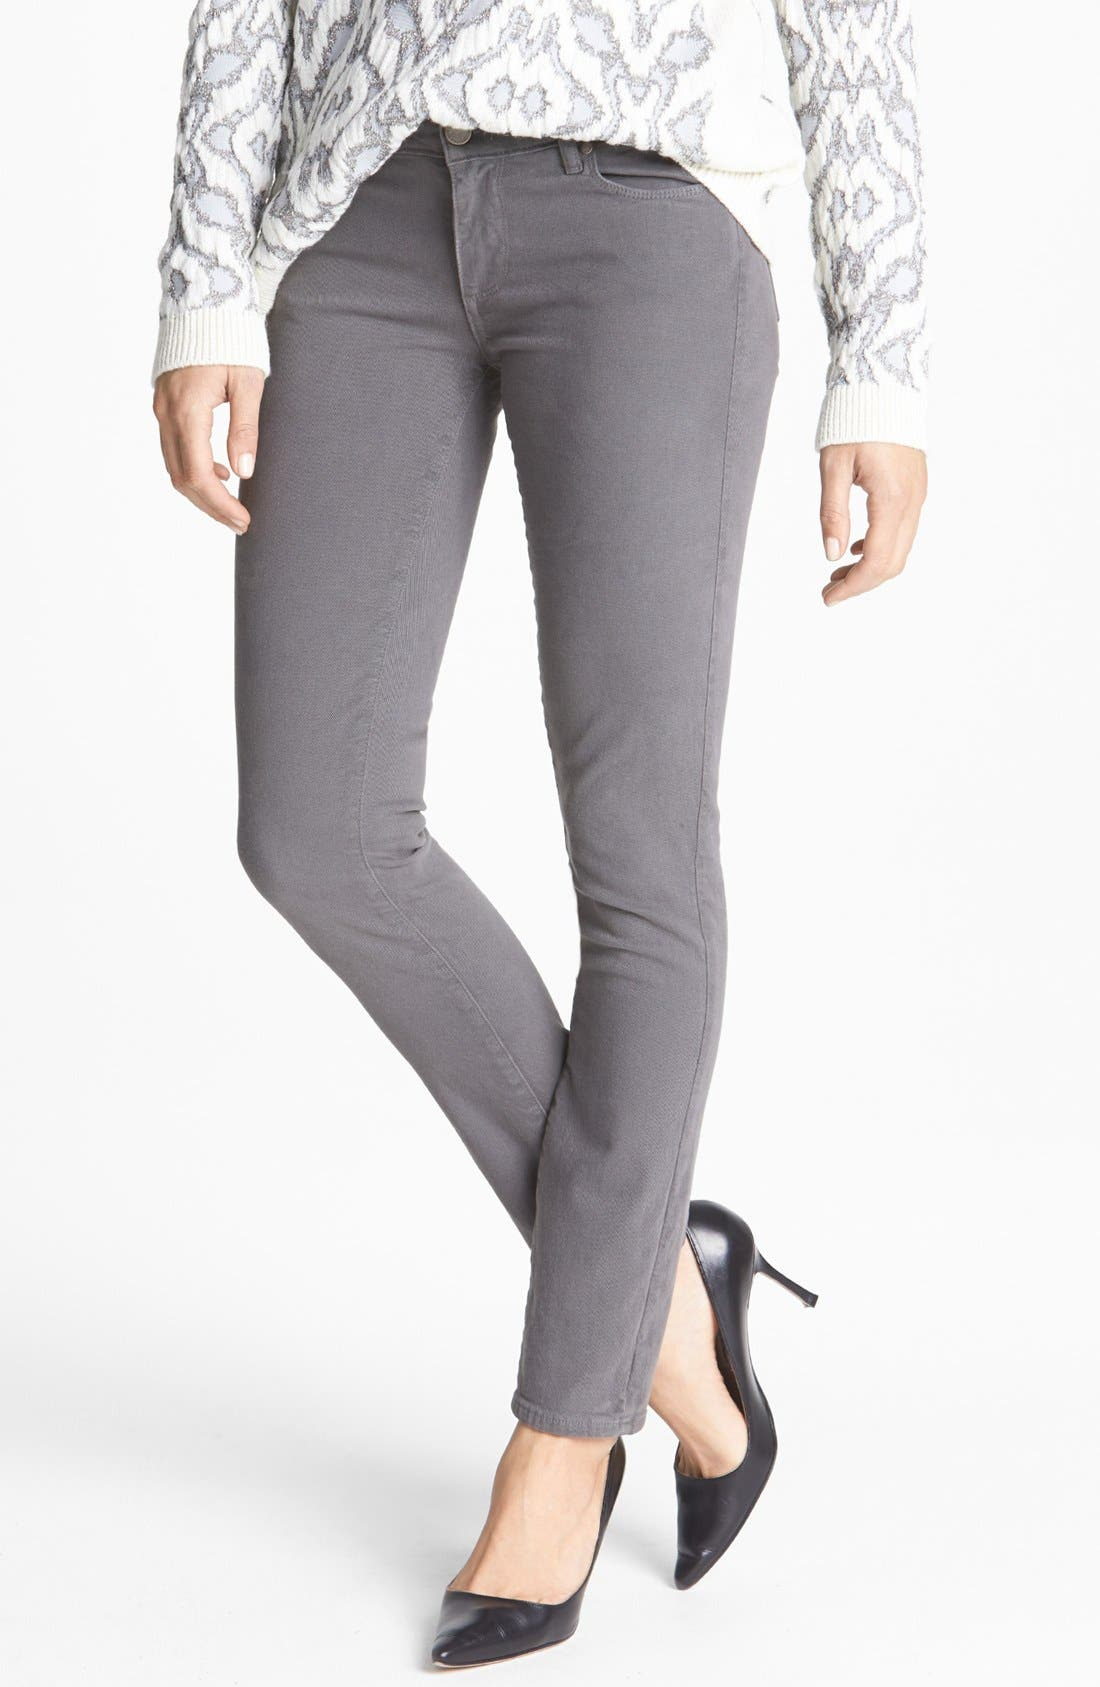 Alternate Image 1 Selected - Paige Denim 'Skyline' Stretch Skinny Jeans (Mobile)